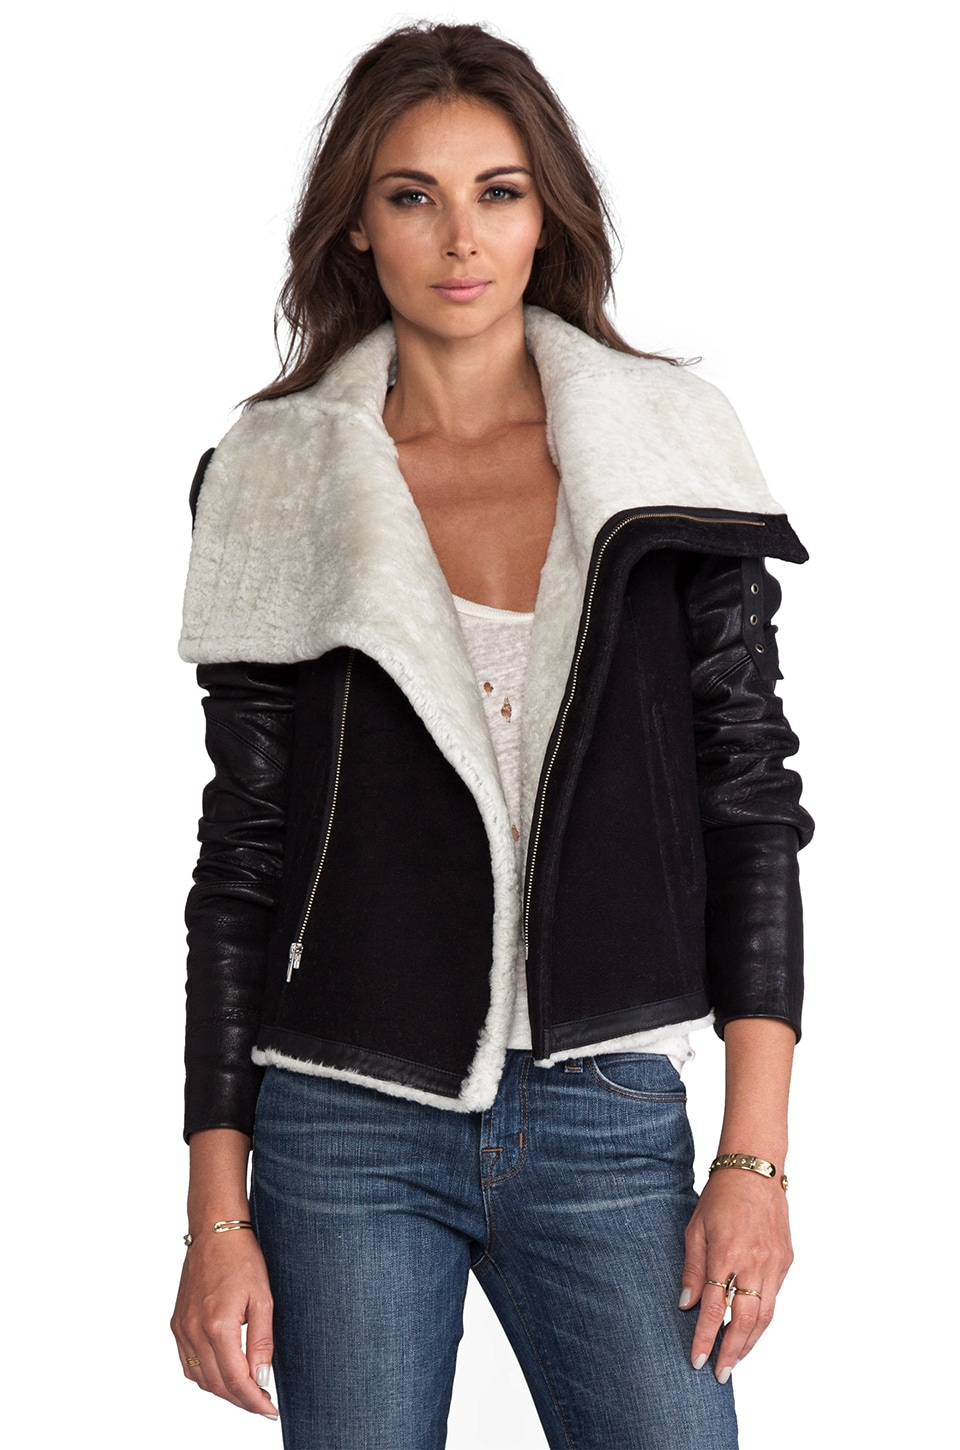 VEDA Mania Jacket in Black & White